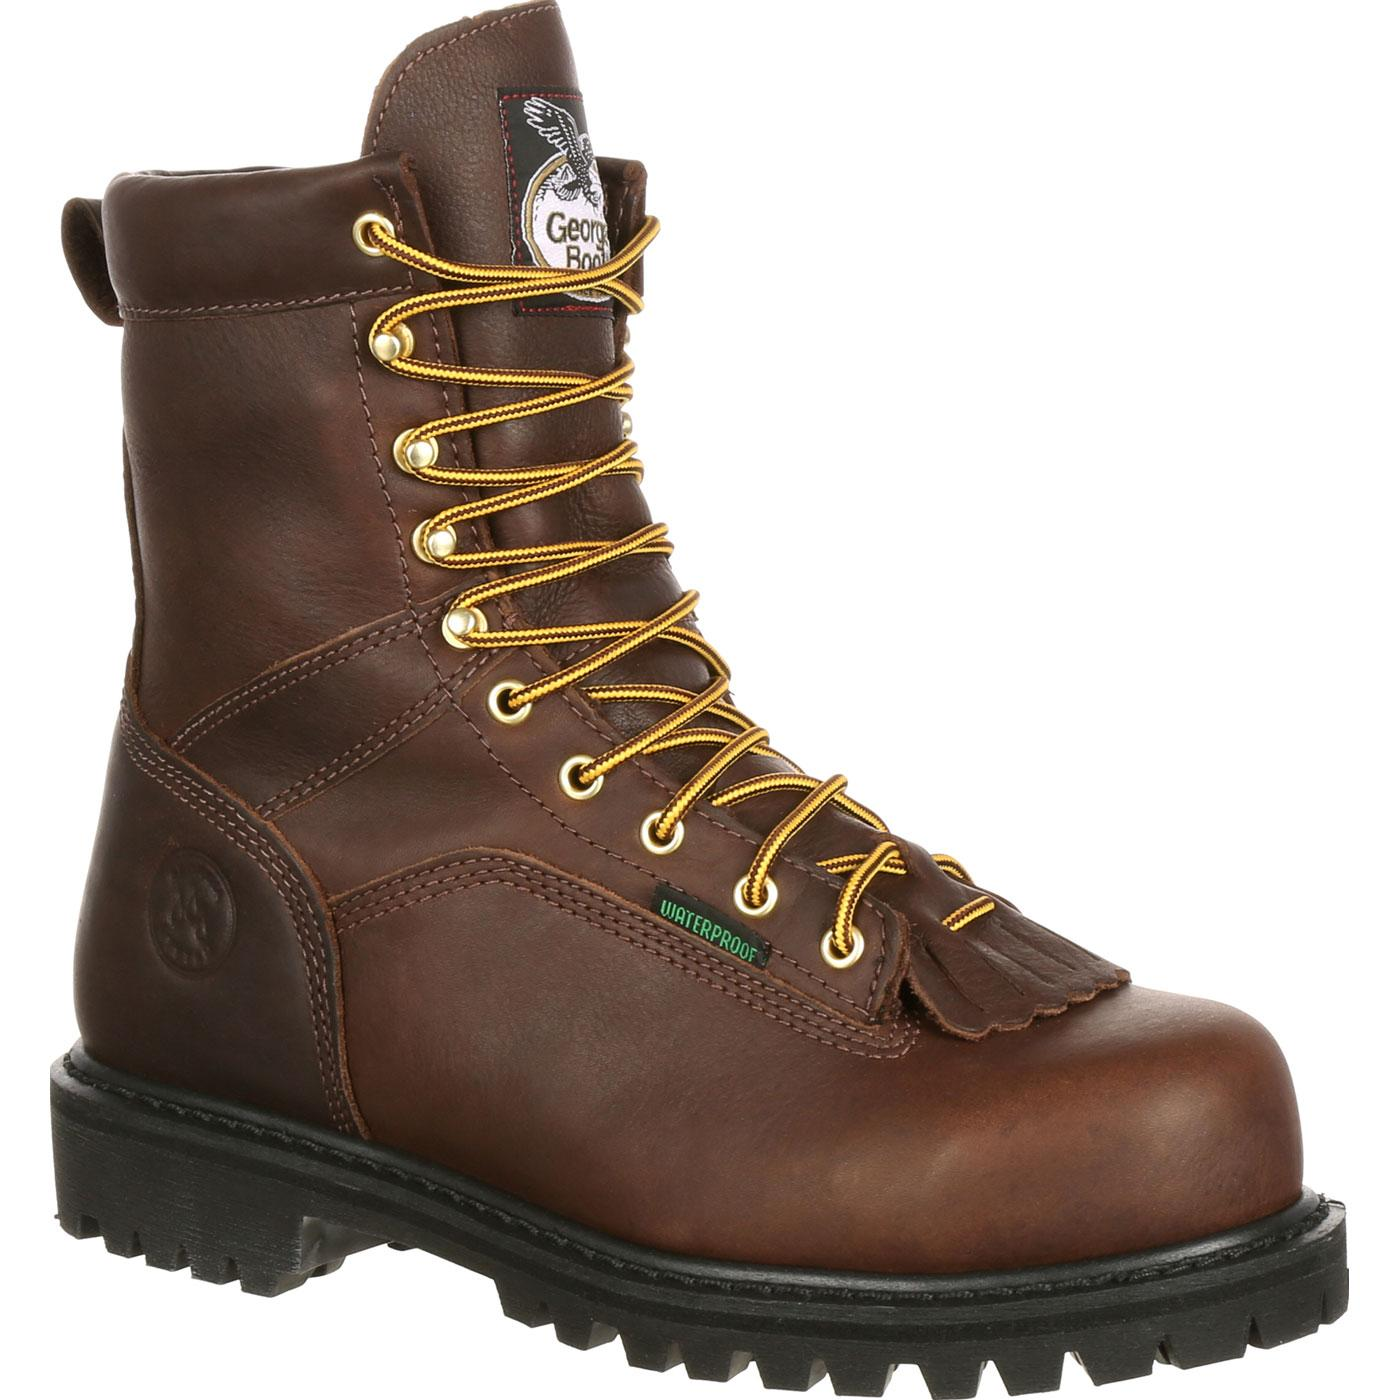 25a6f207905 Georgia Boot Lace-to-Toe Waterproof Work Boot